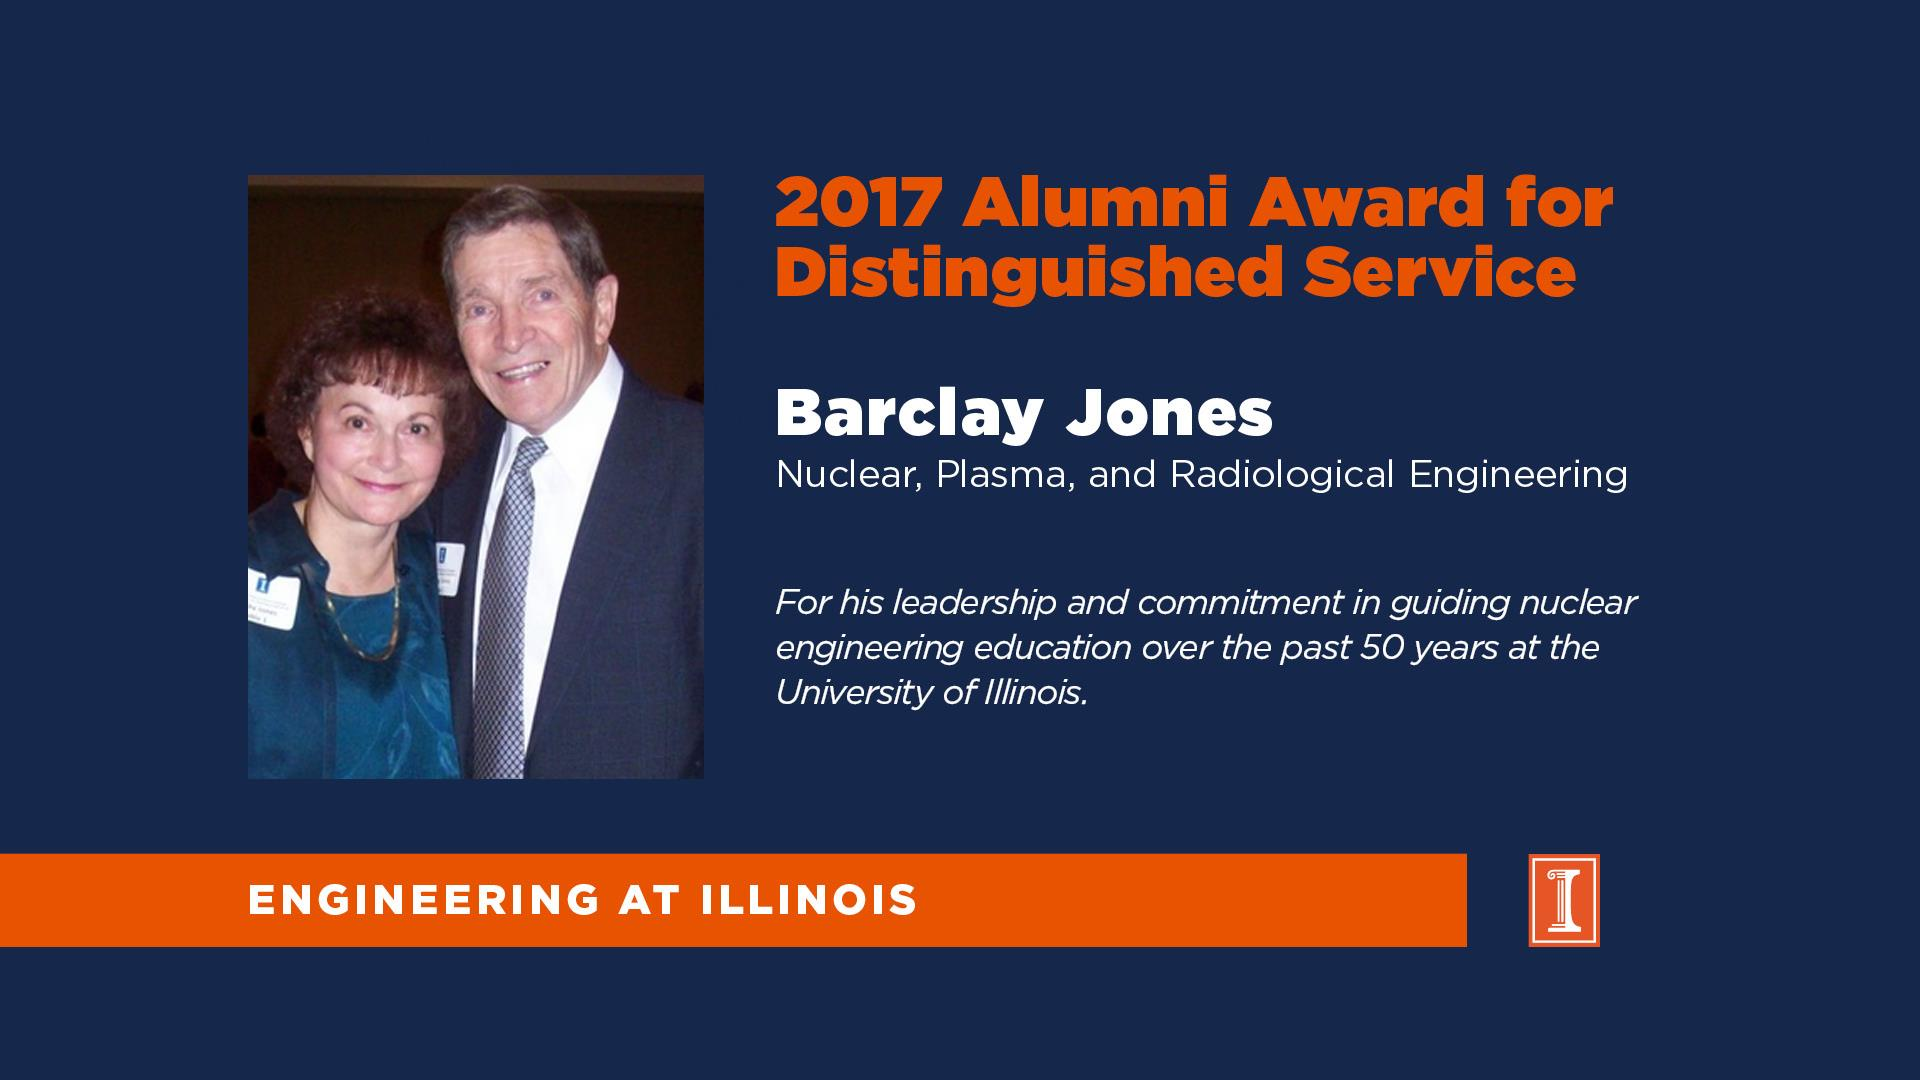 Engineering at Illinois Announces Barclay Jones as Distinguished Alumni Award Recipient